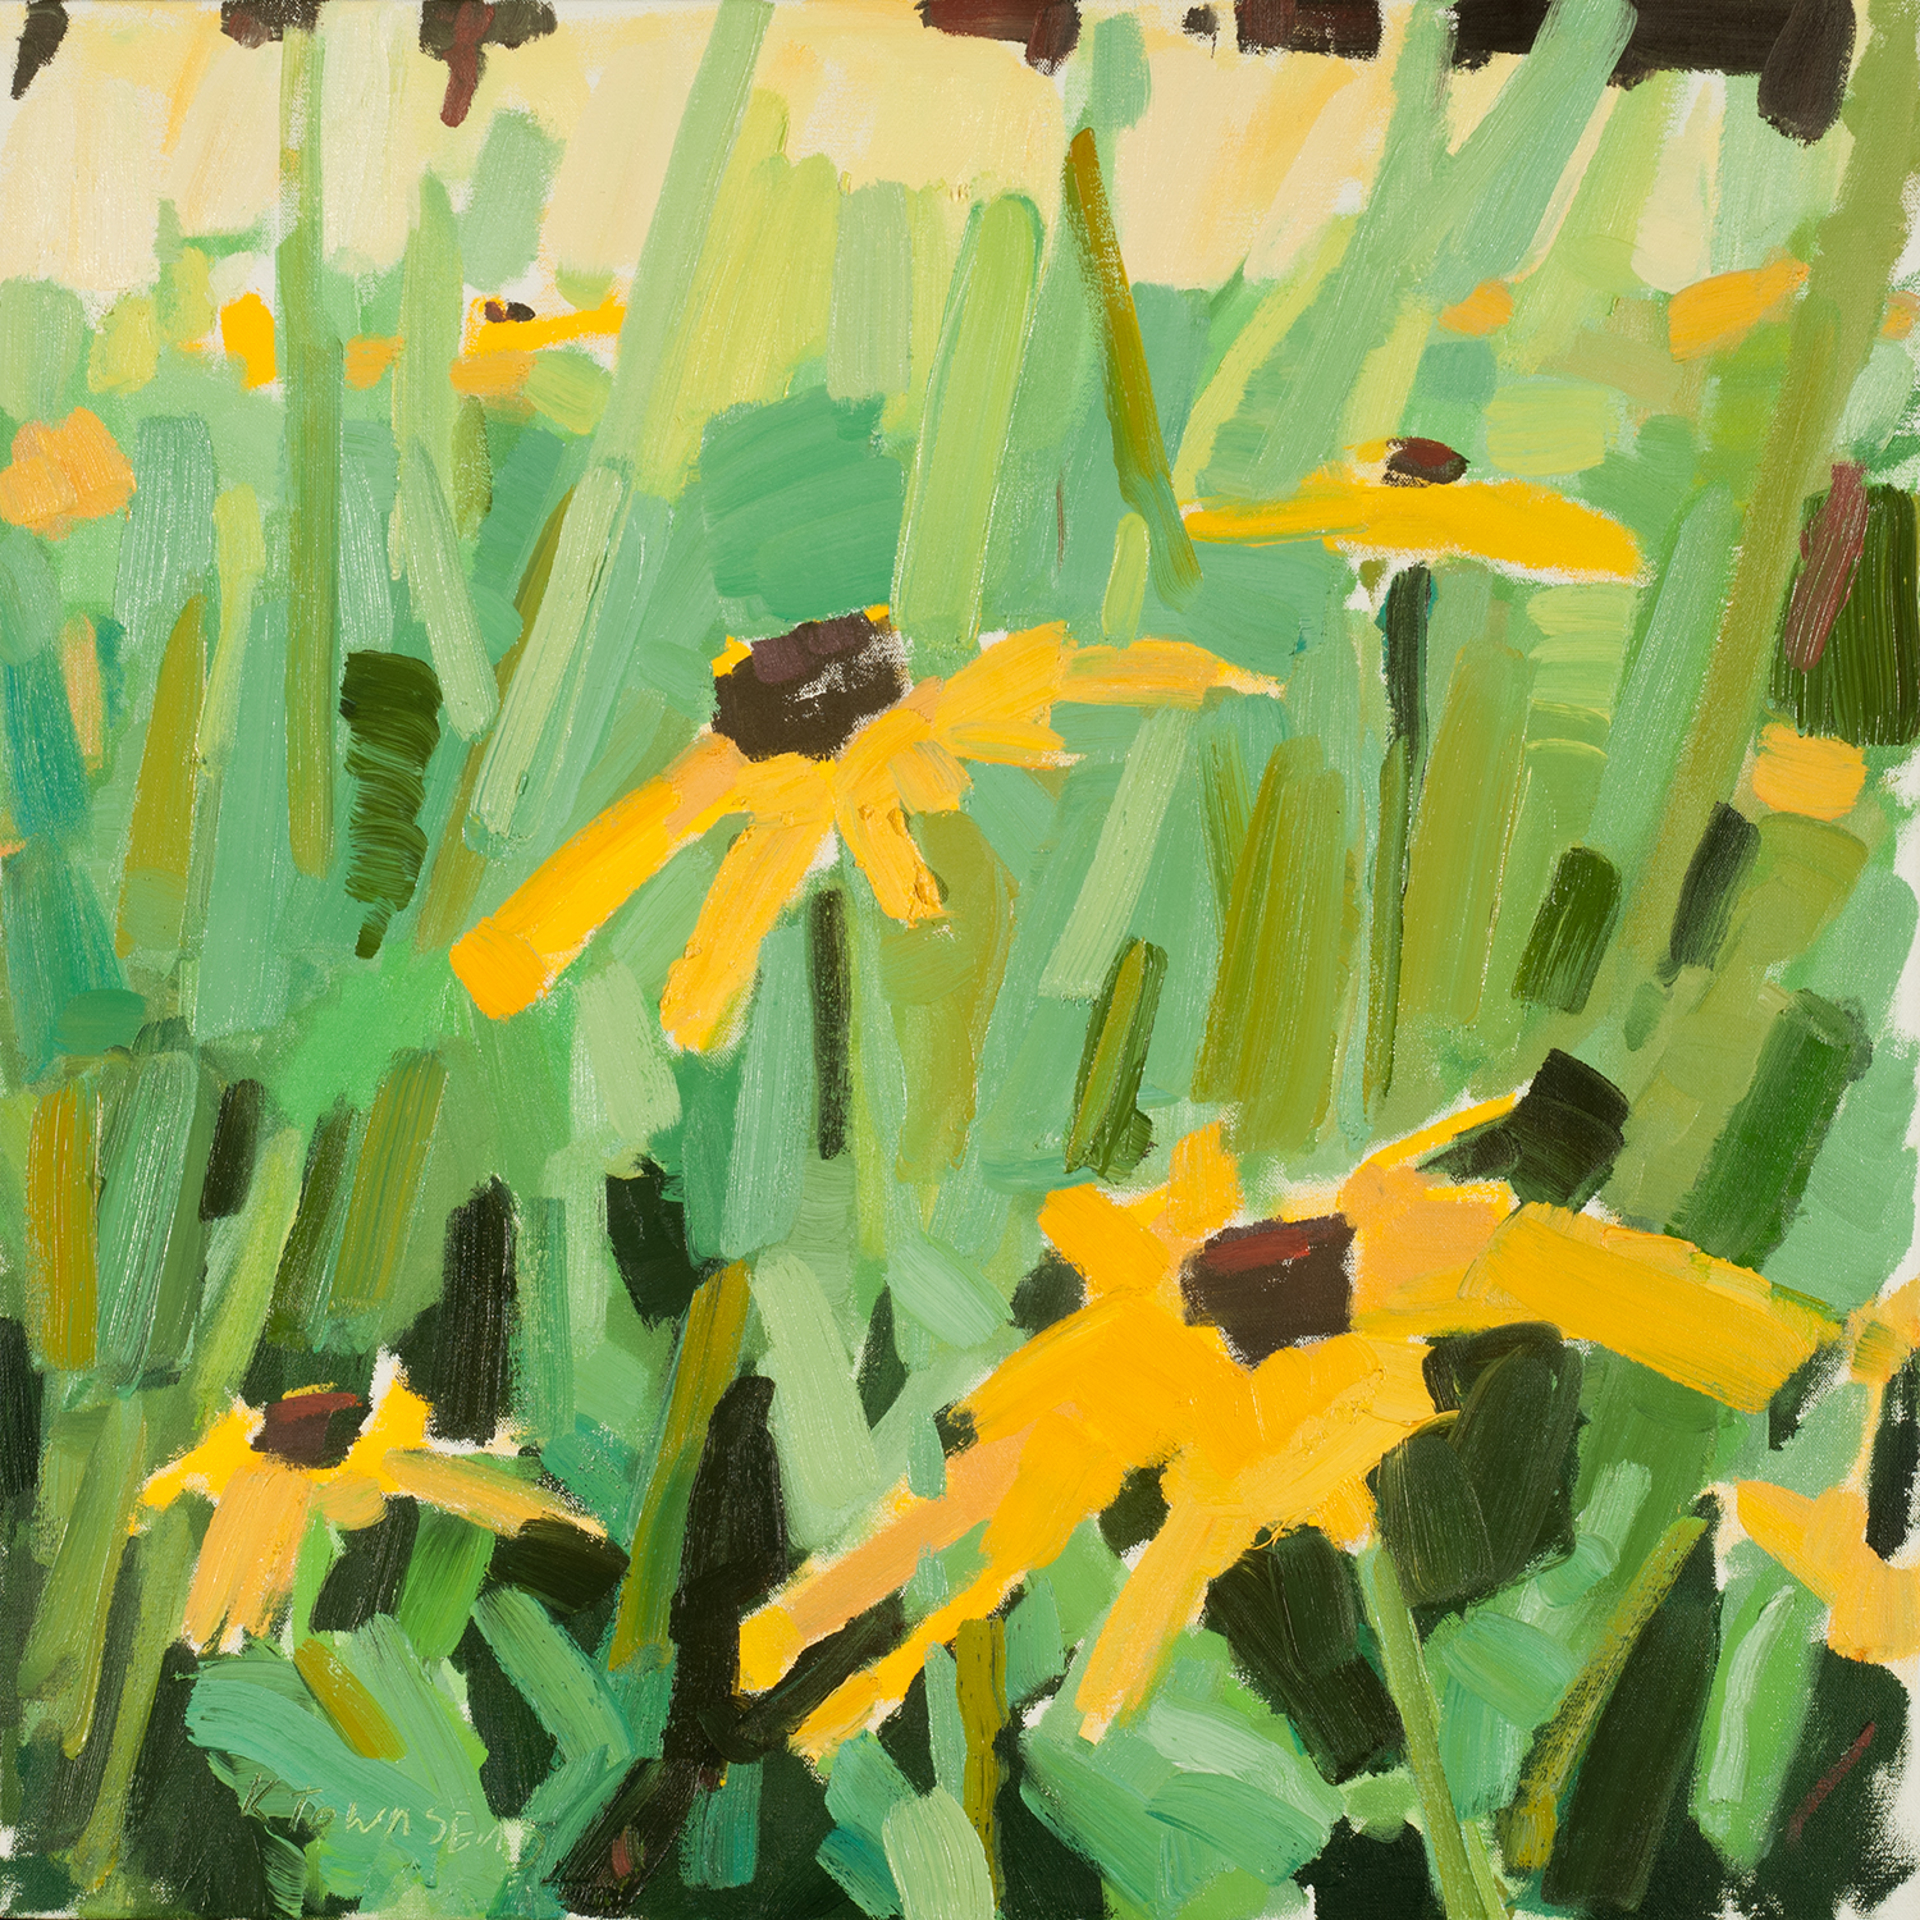 Yellow Echinacea Meadow by Krista Townsend